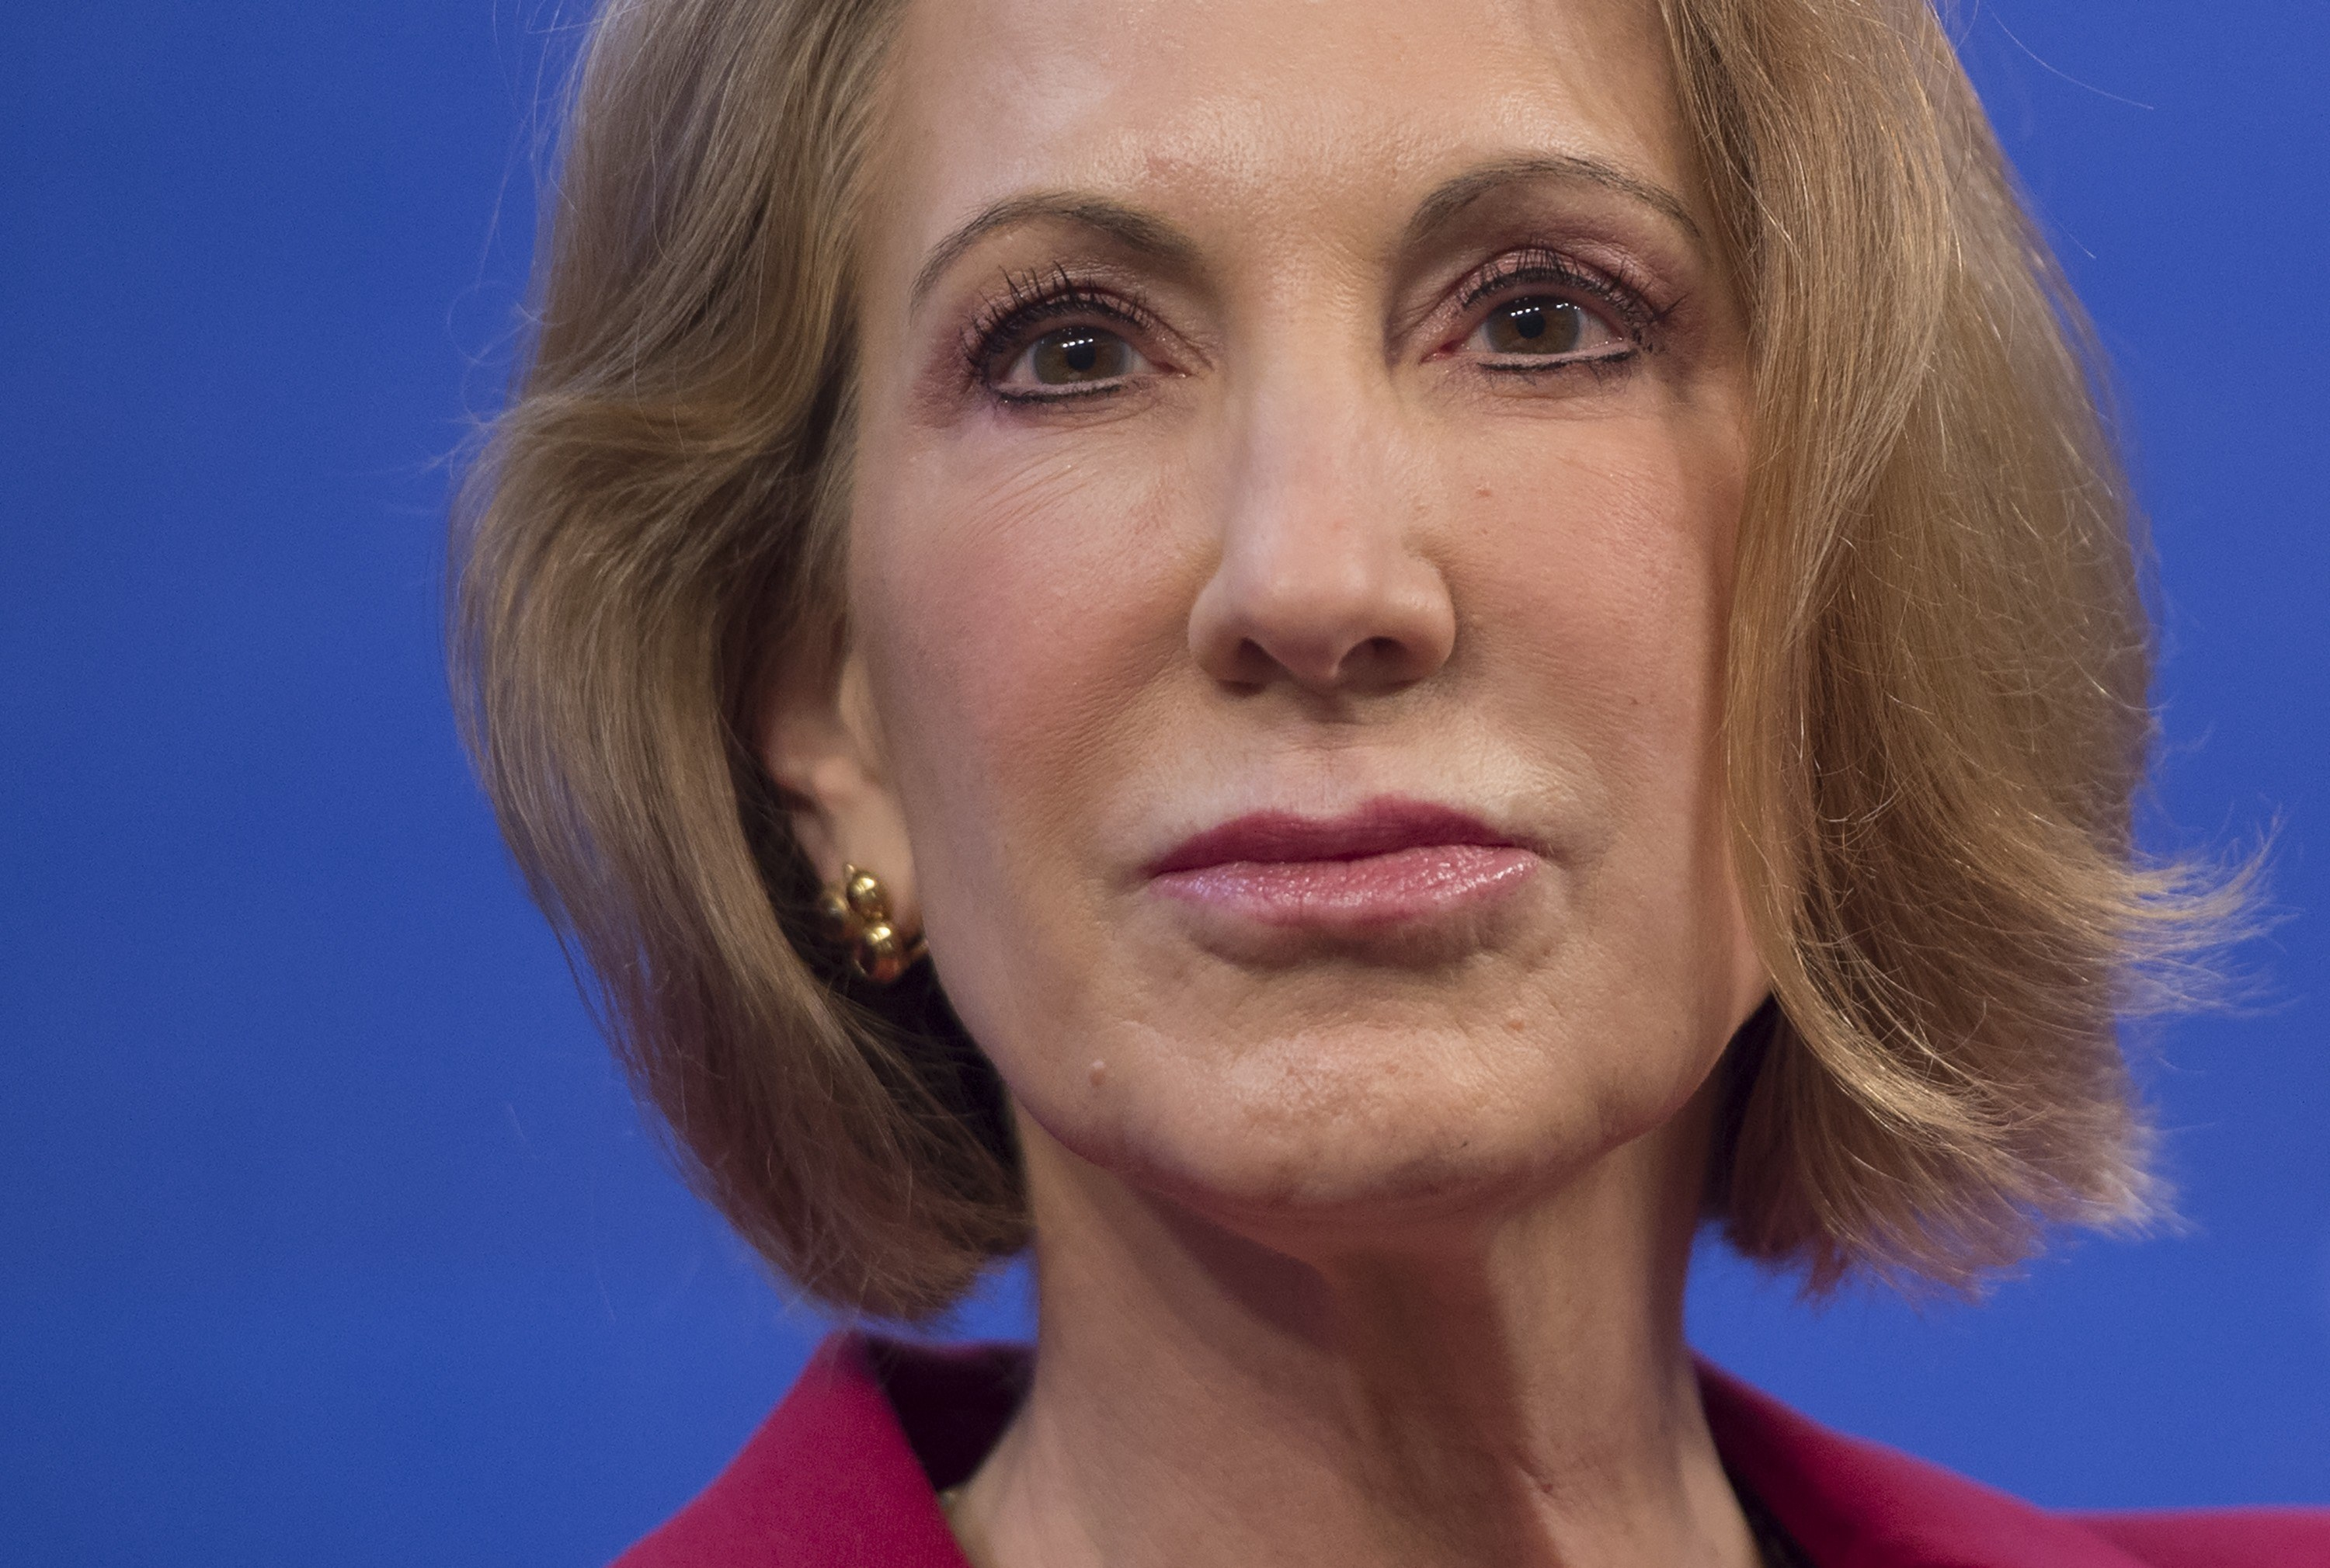 Carly Fiorina speaks about the economy at the Heritage Foundation on December 18, 2014.